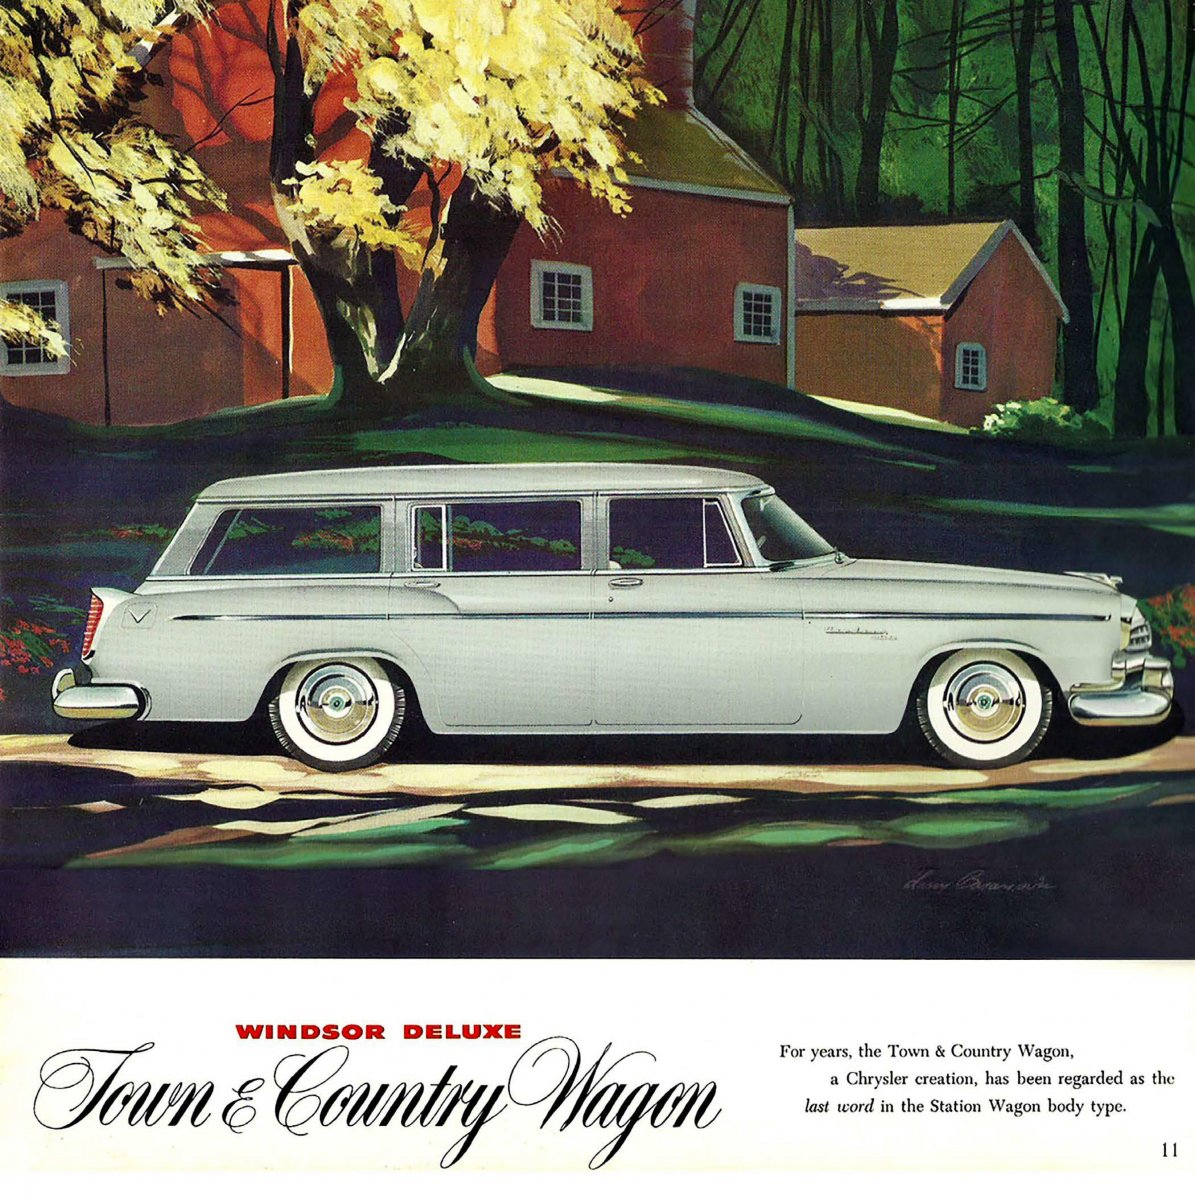 1955_Chrysler_Windsor_Brochure_1-16_11.jpg